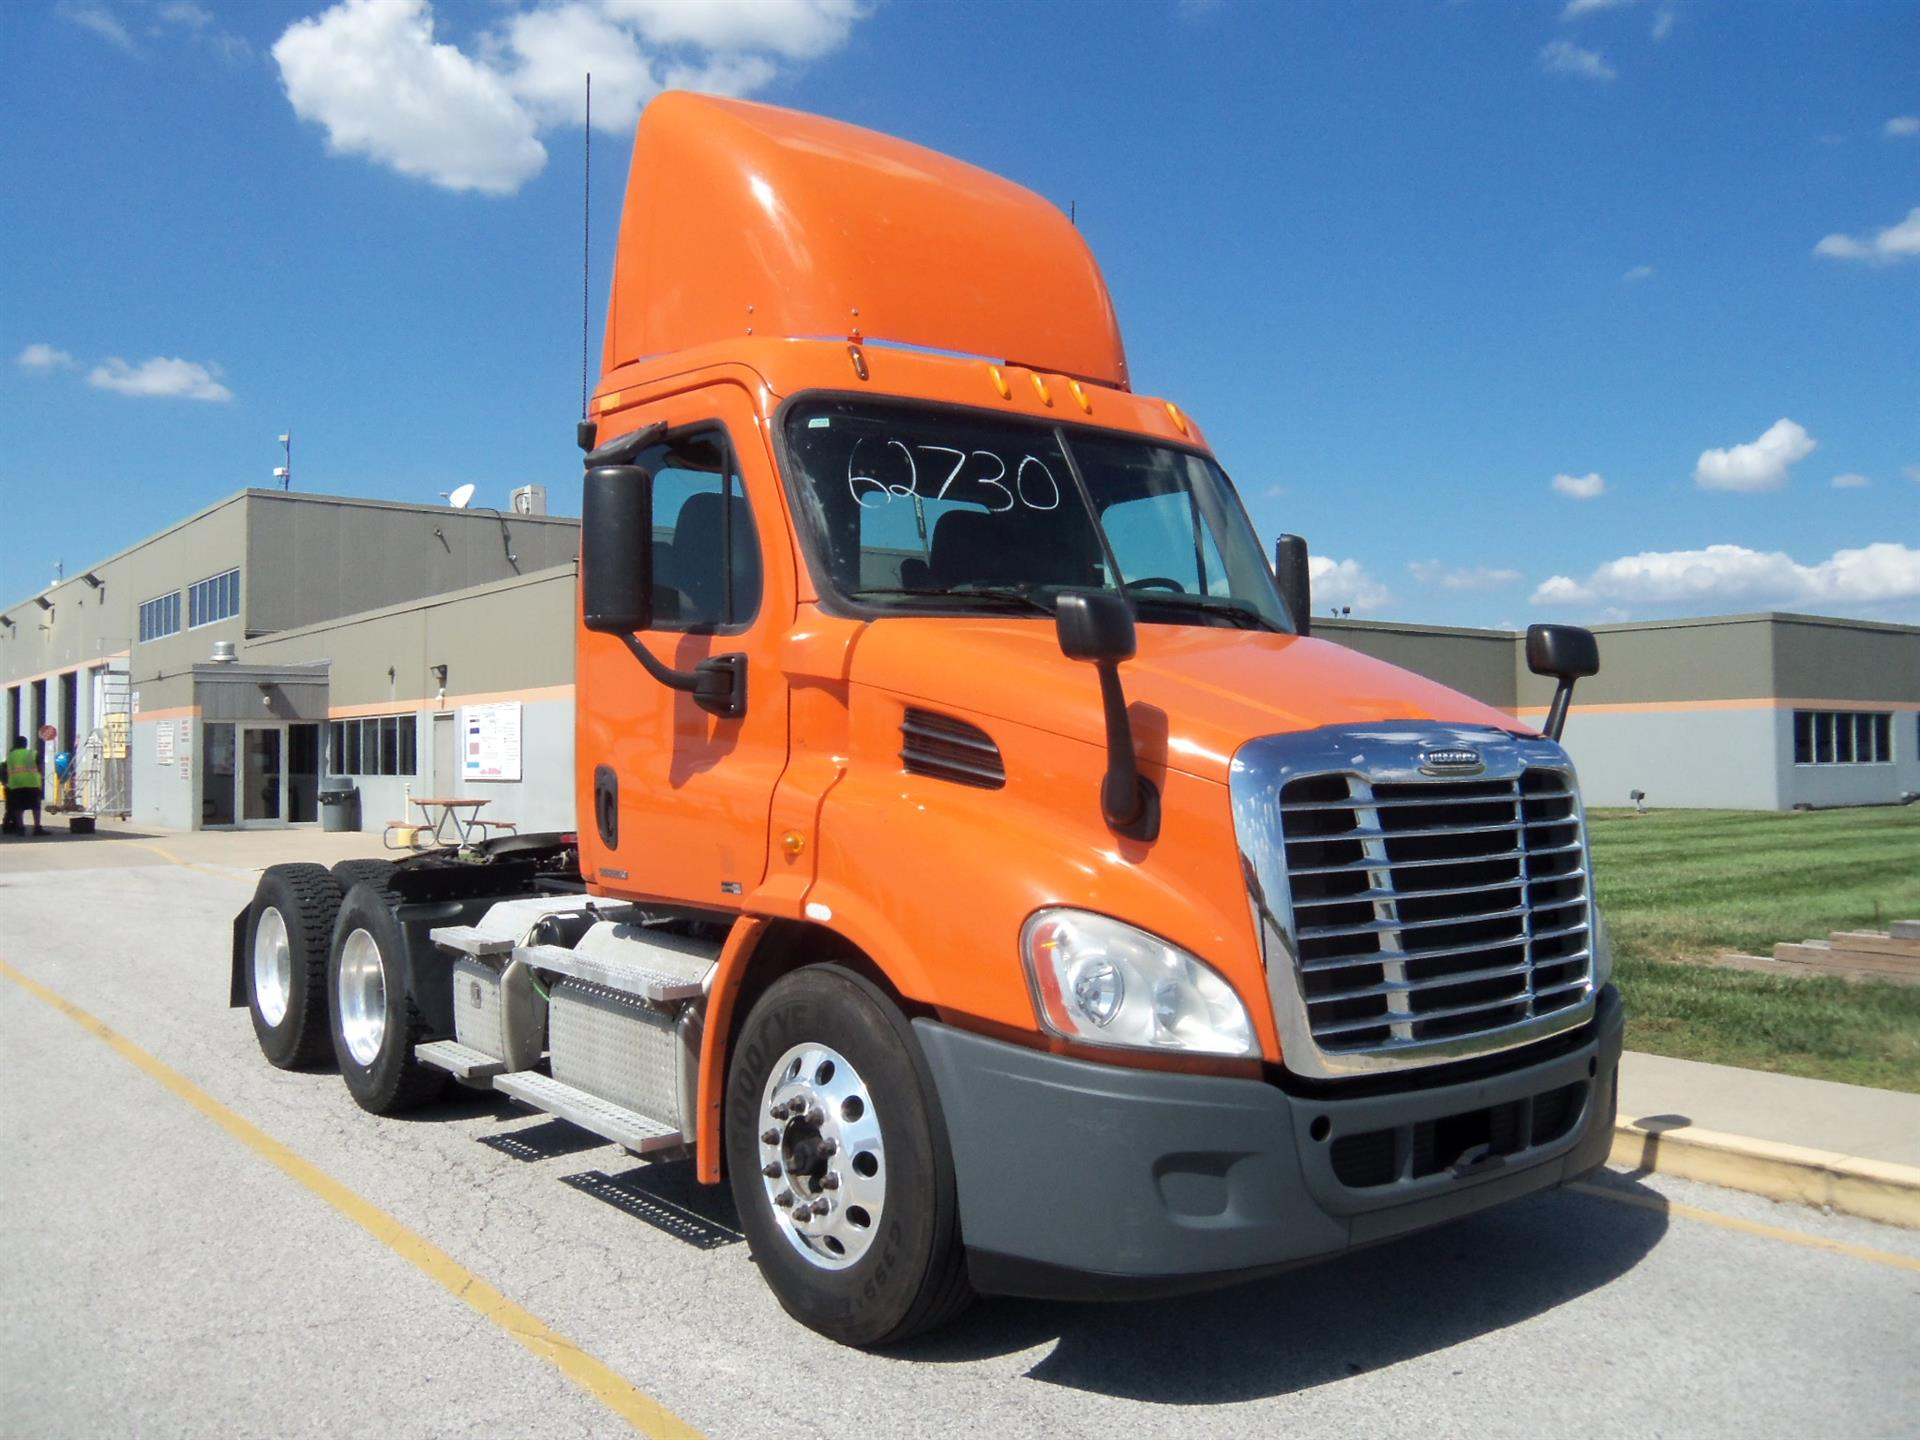 USED 2011 FREIGHTLINER CASCADIA DAYCAB TRUCK #60696